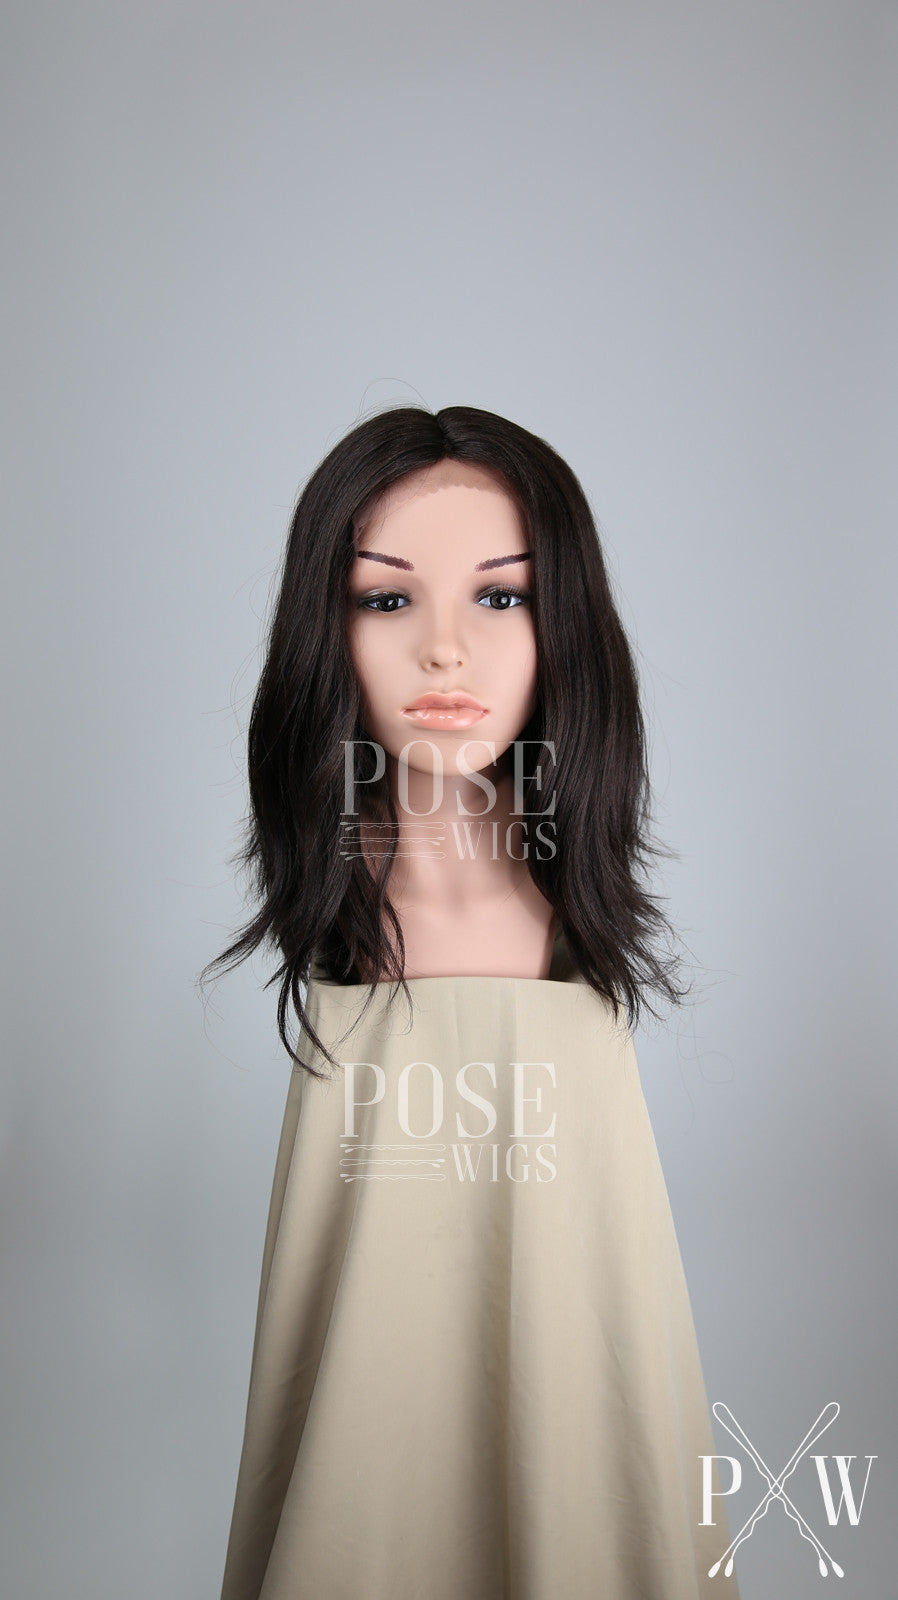 Dark Brown Medium Length Wavy Bob Lace Front Wig Duchess Series Ldha Pose Wigs